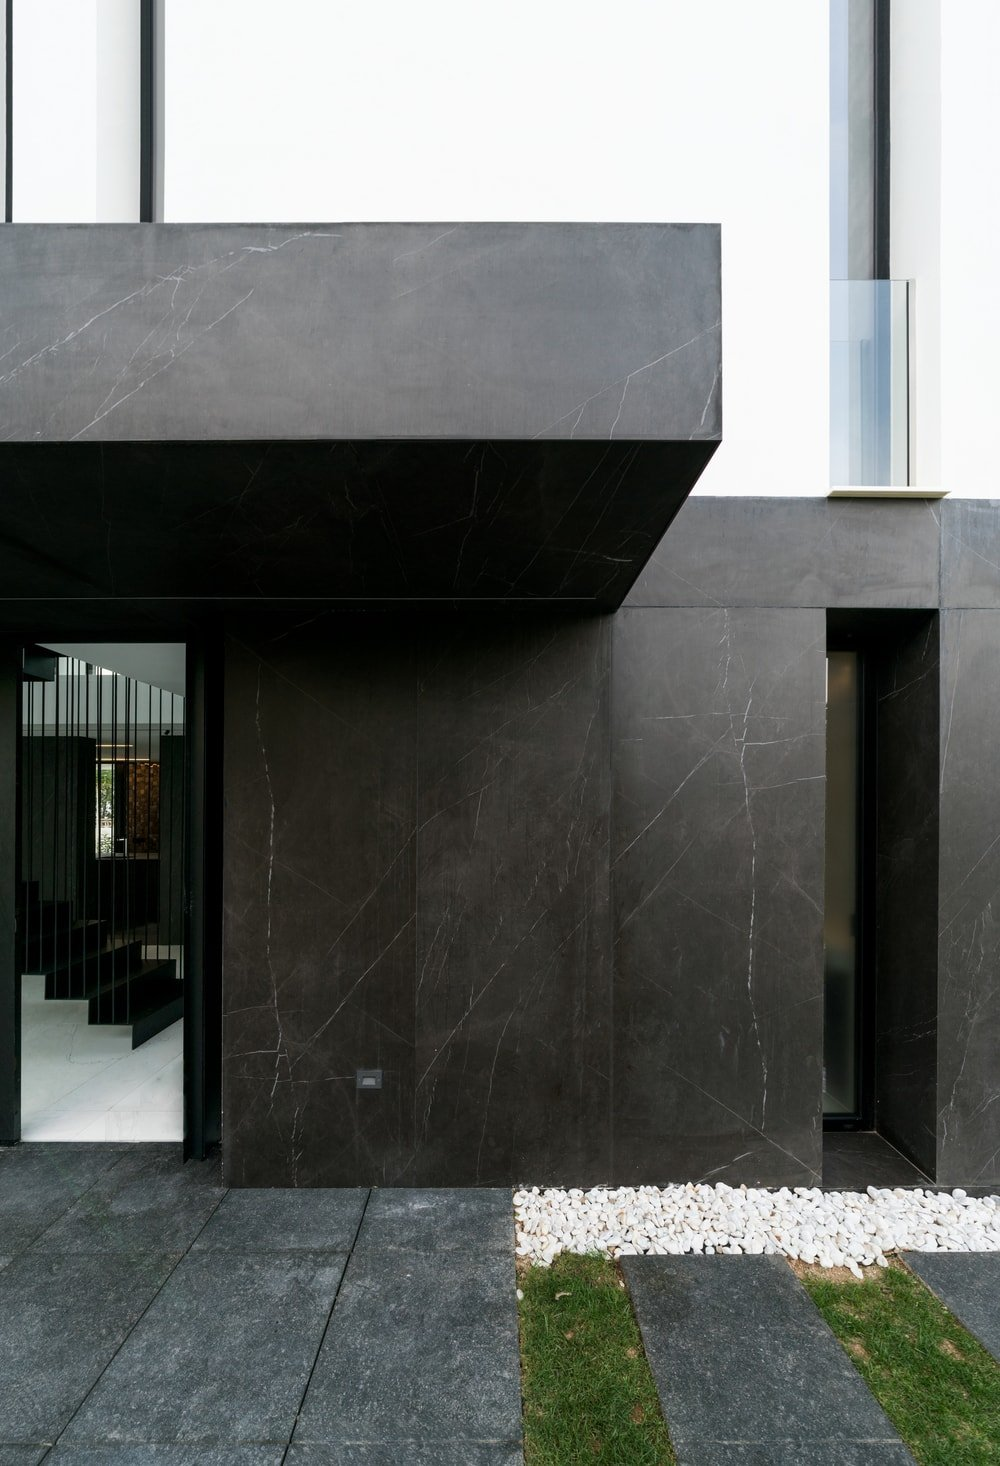 The black material used on the main entrance of the house extends to the sides that has a tall and thin window.